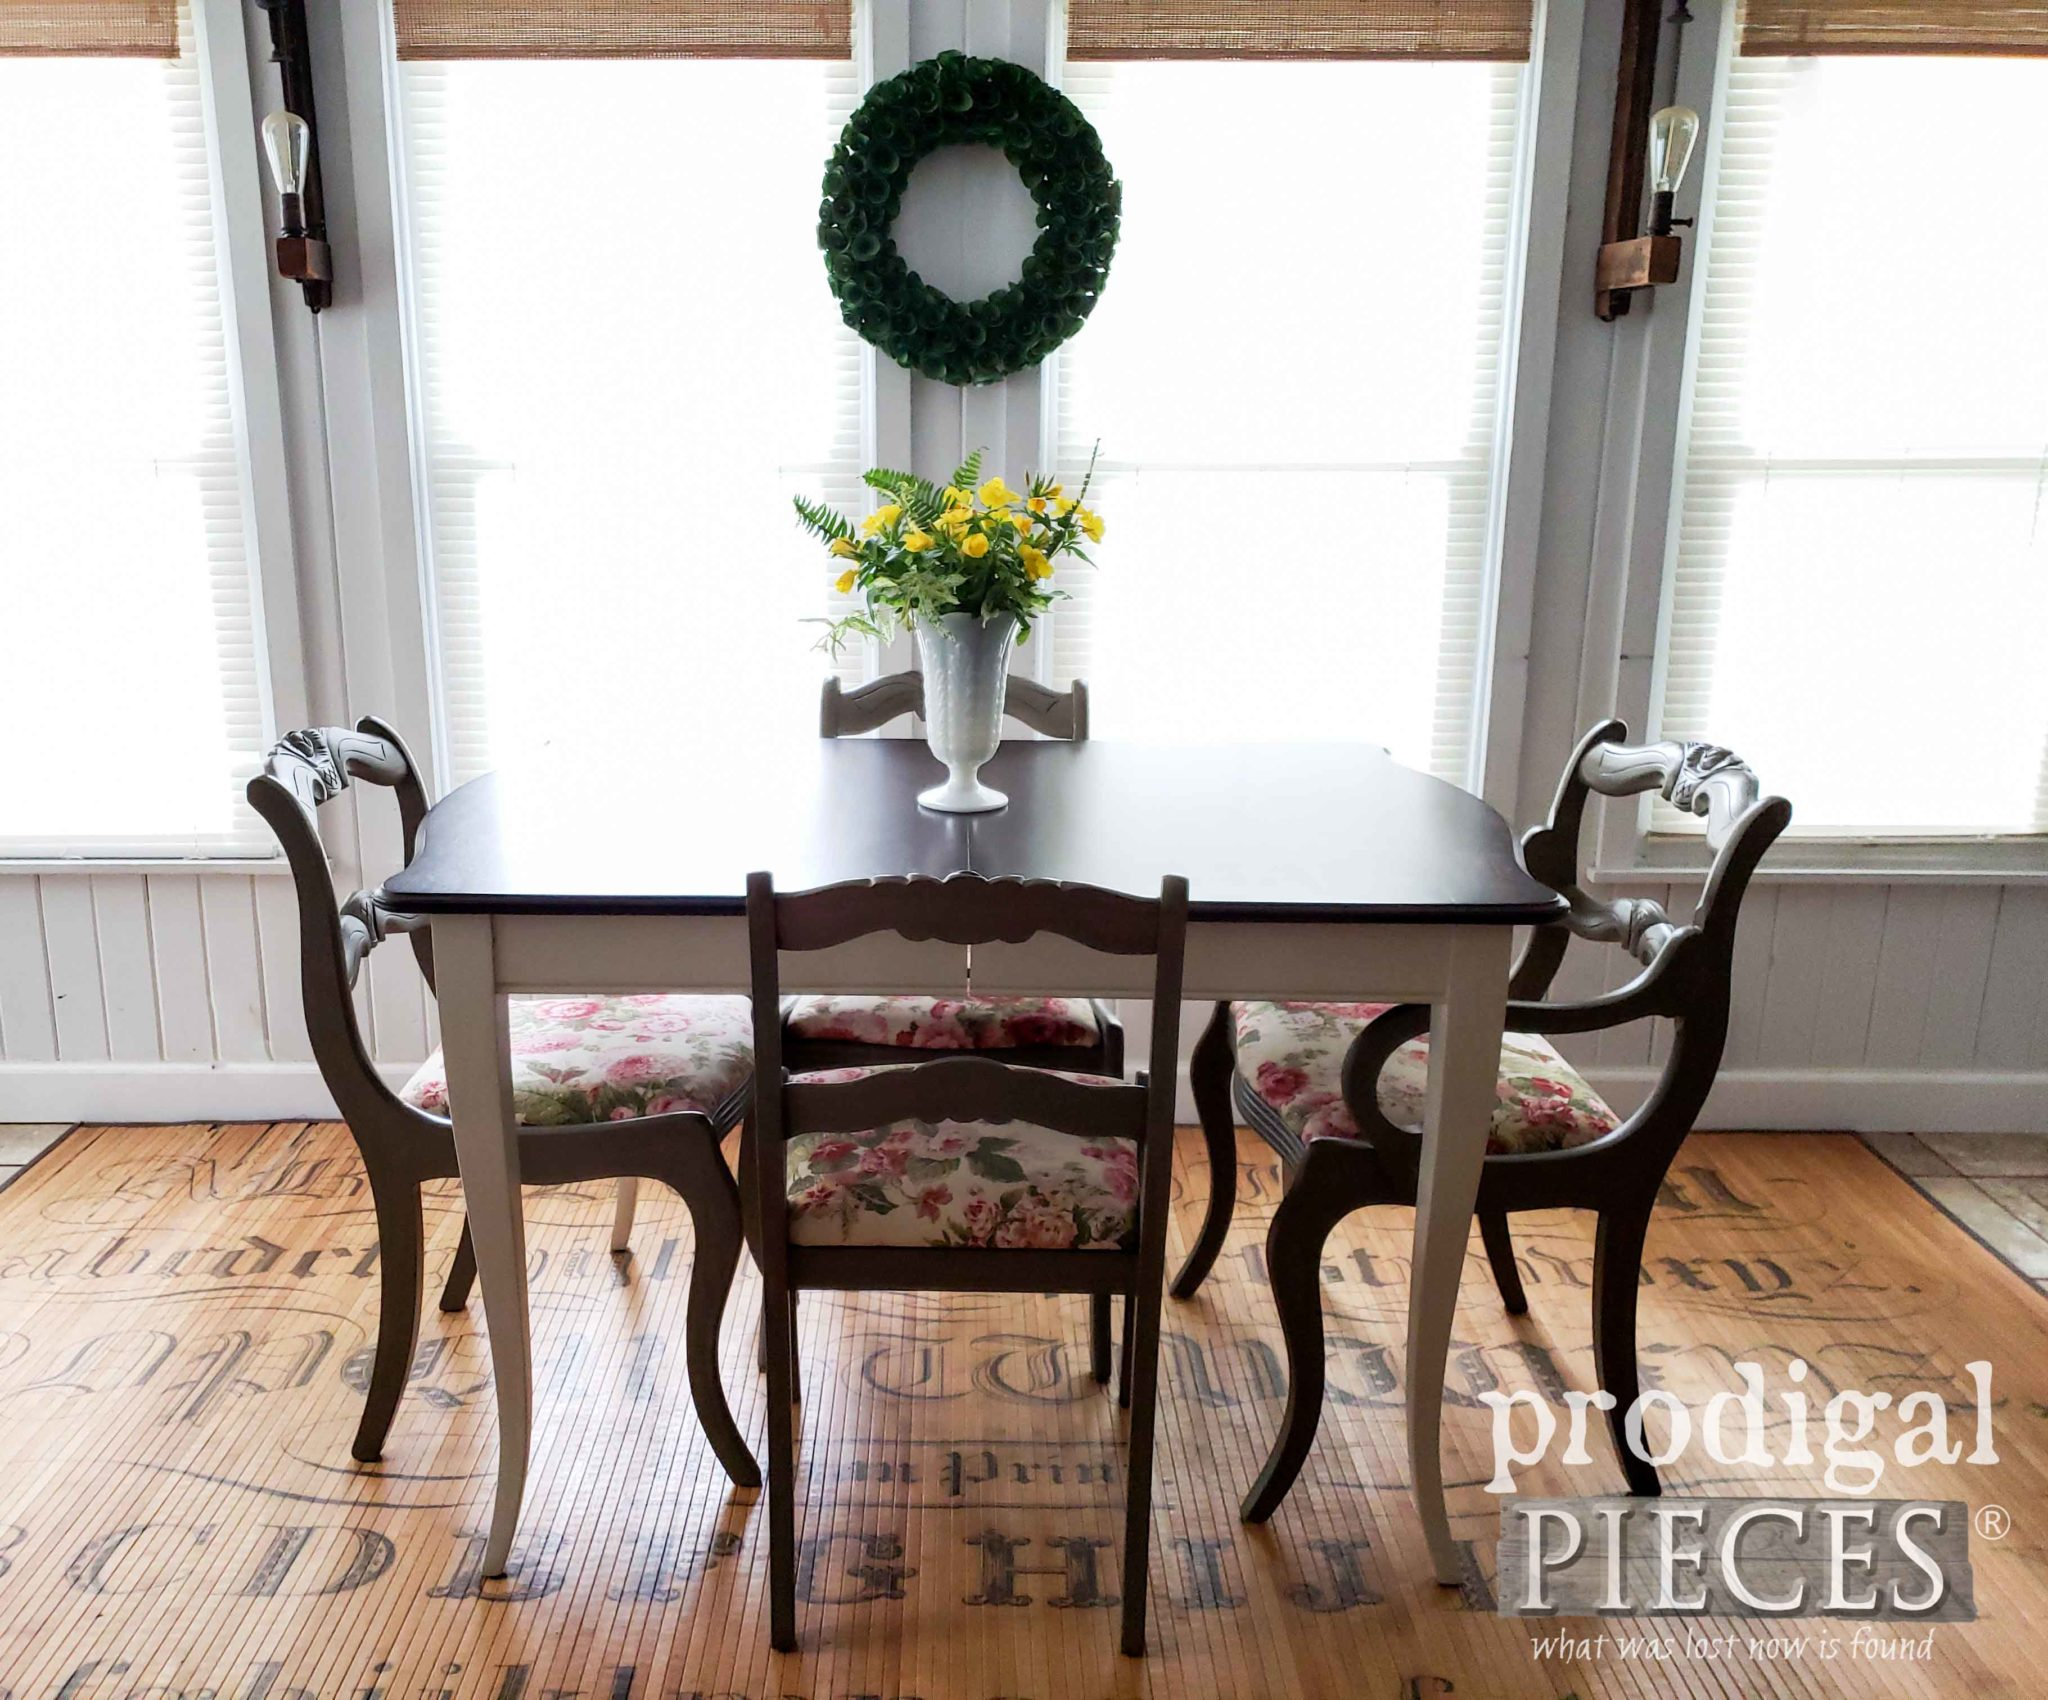 Traditional Vintage Dining Set with Extension Table and Upholstered Chairs by Larissa of Prodigal Pieces | prodigalpieces.com